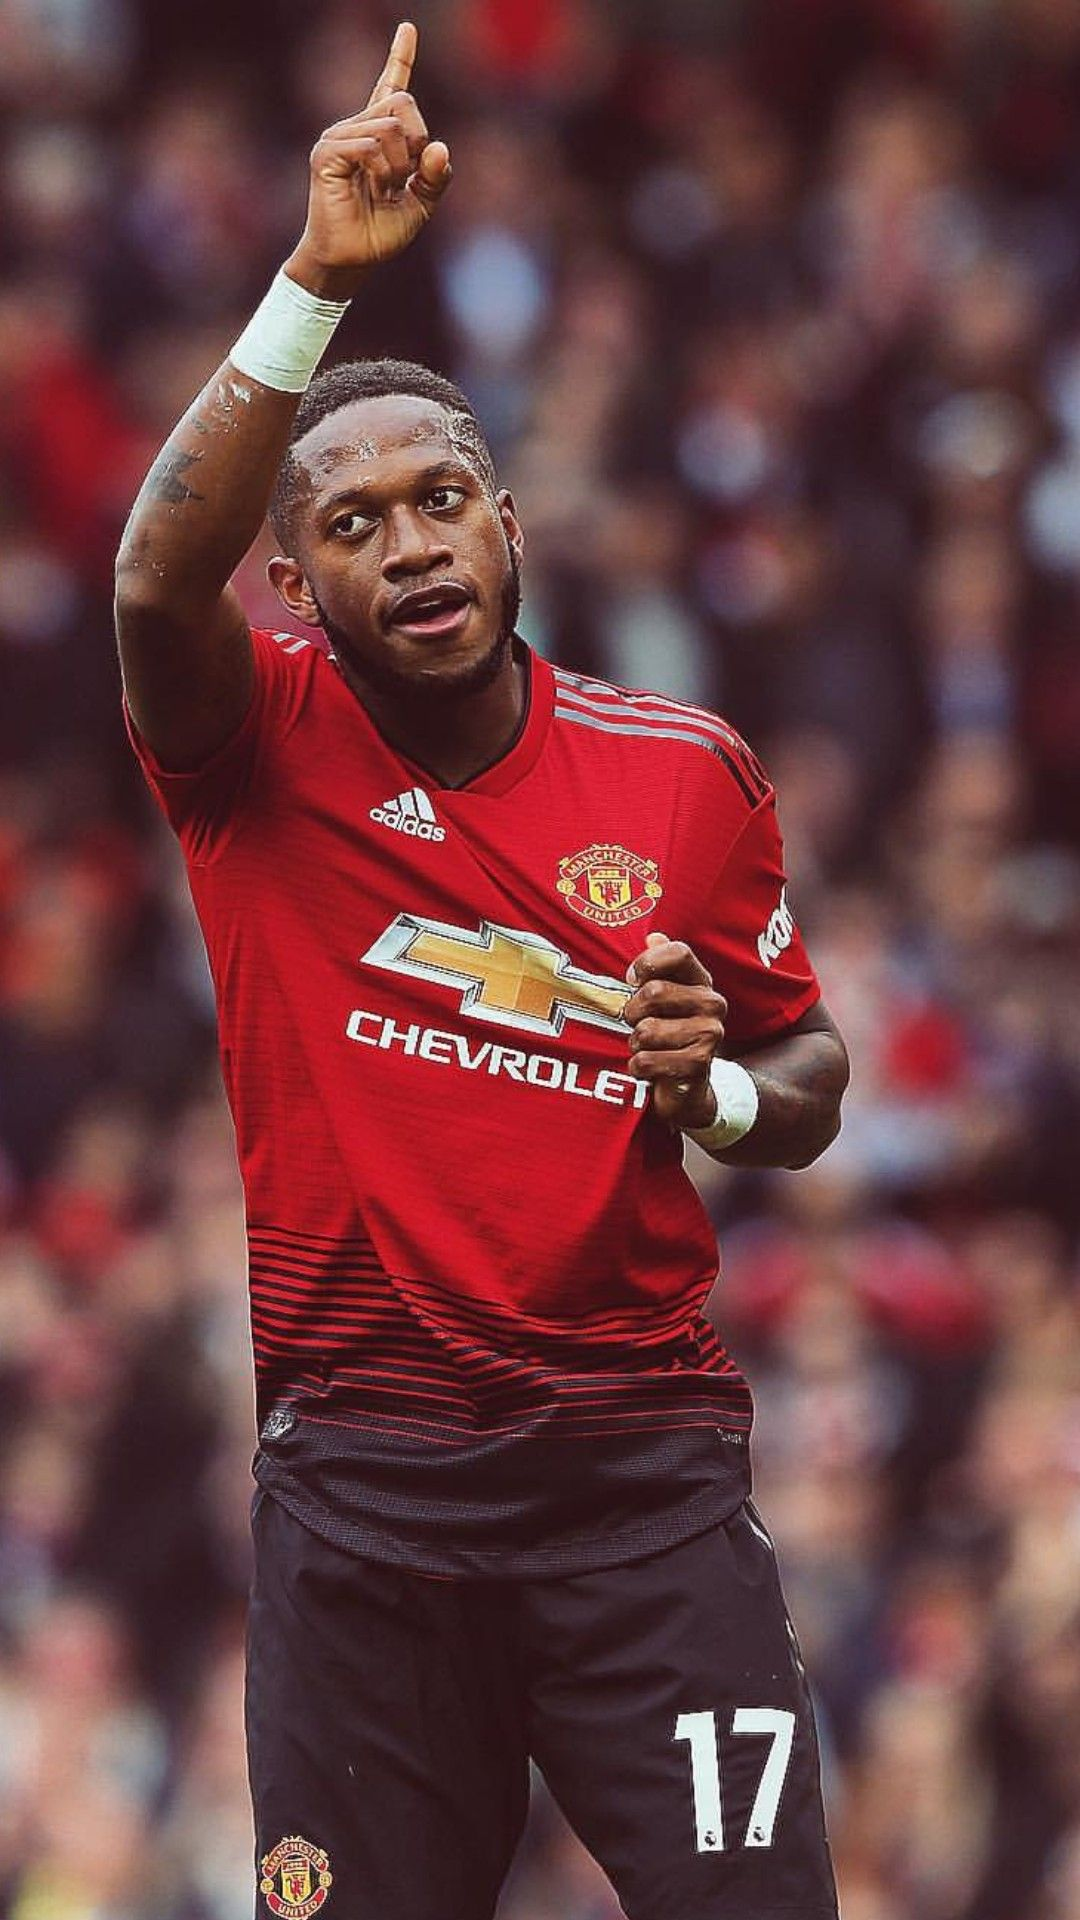 Fred The 500th Player To Score For United Manchester United Shirt Manchester United Wallpaper Manchester United Legends